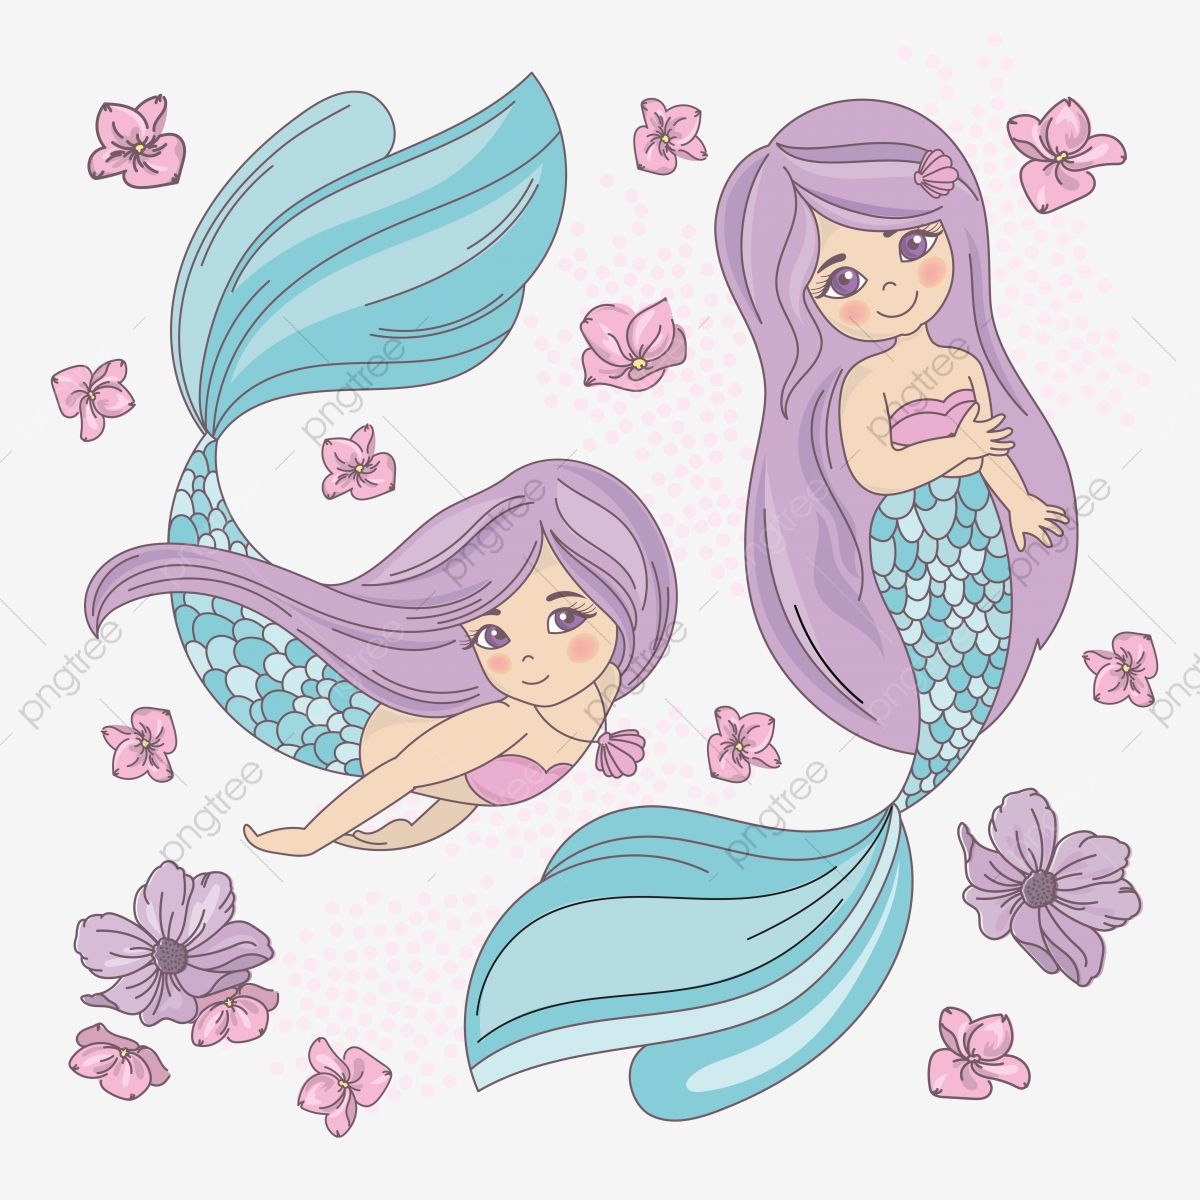 Purple Mermaid Underwater Vector Illustration Set For Textile Fabric Print Holiday Art Scrapbooking Design And Digital Underwater Mermaid Holidayprincess Png And Vector With Transparent Background For Free Download